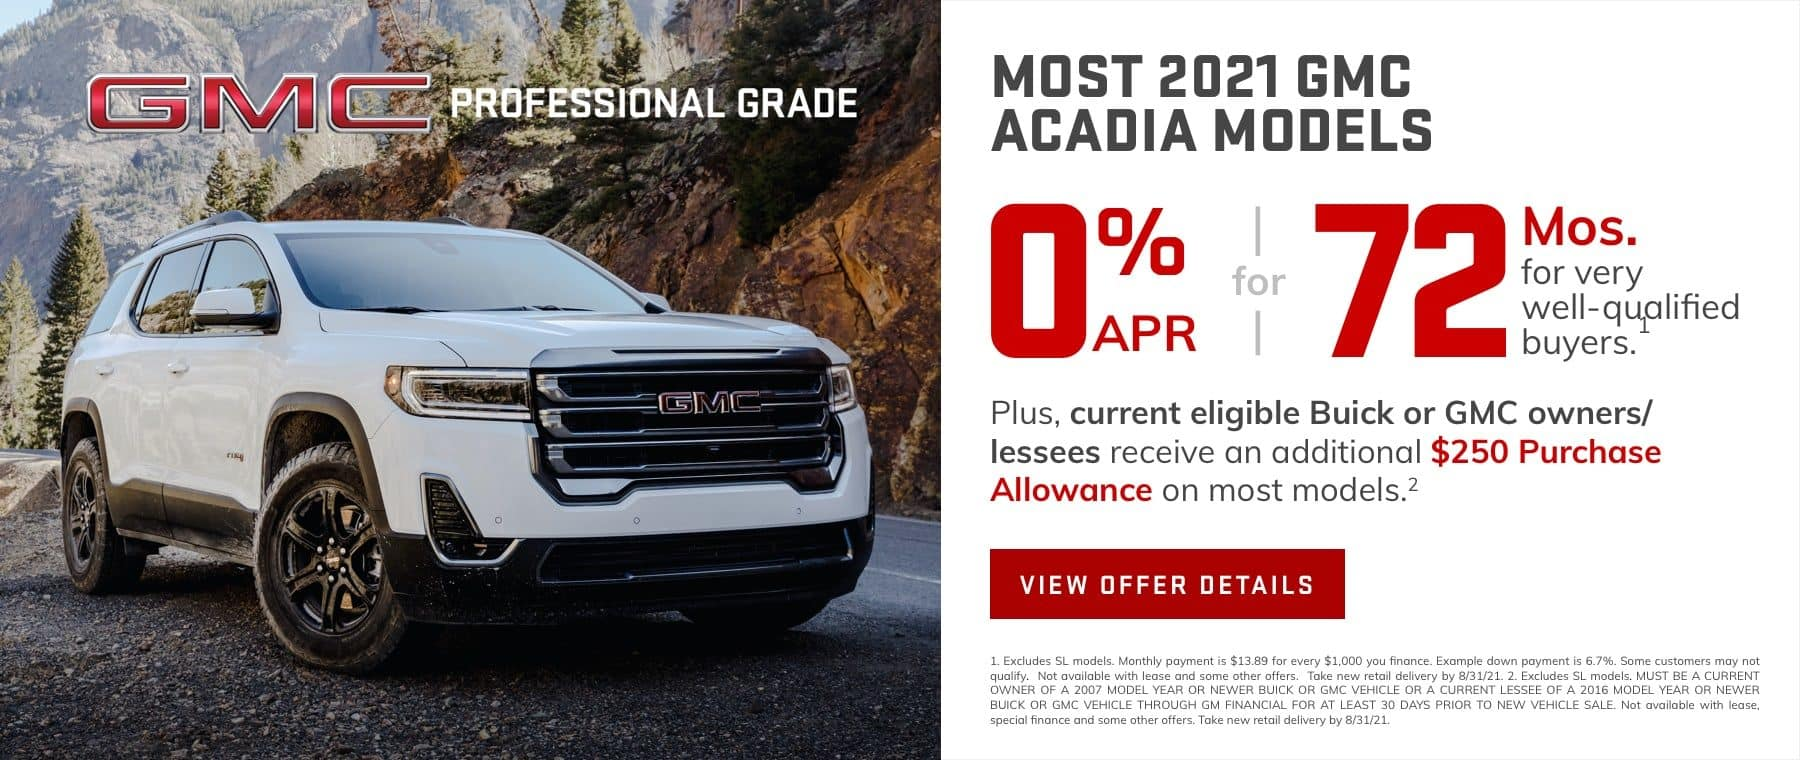 0% APR for 72 months for very well-qualified buyers.1 Plus, current eligible Buick or GMC owners/lessees receive an additional $250 Purchase Allowance on most models.2